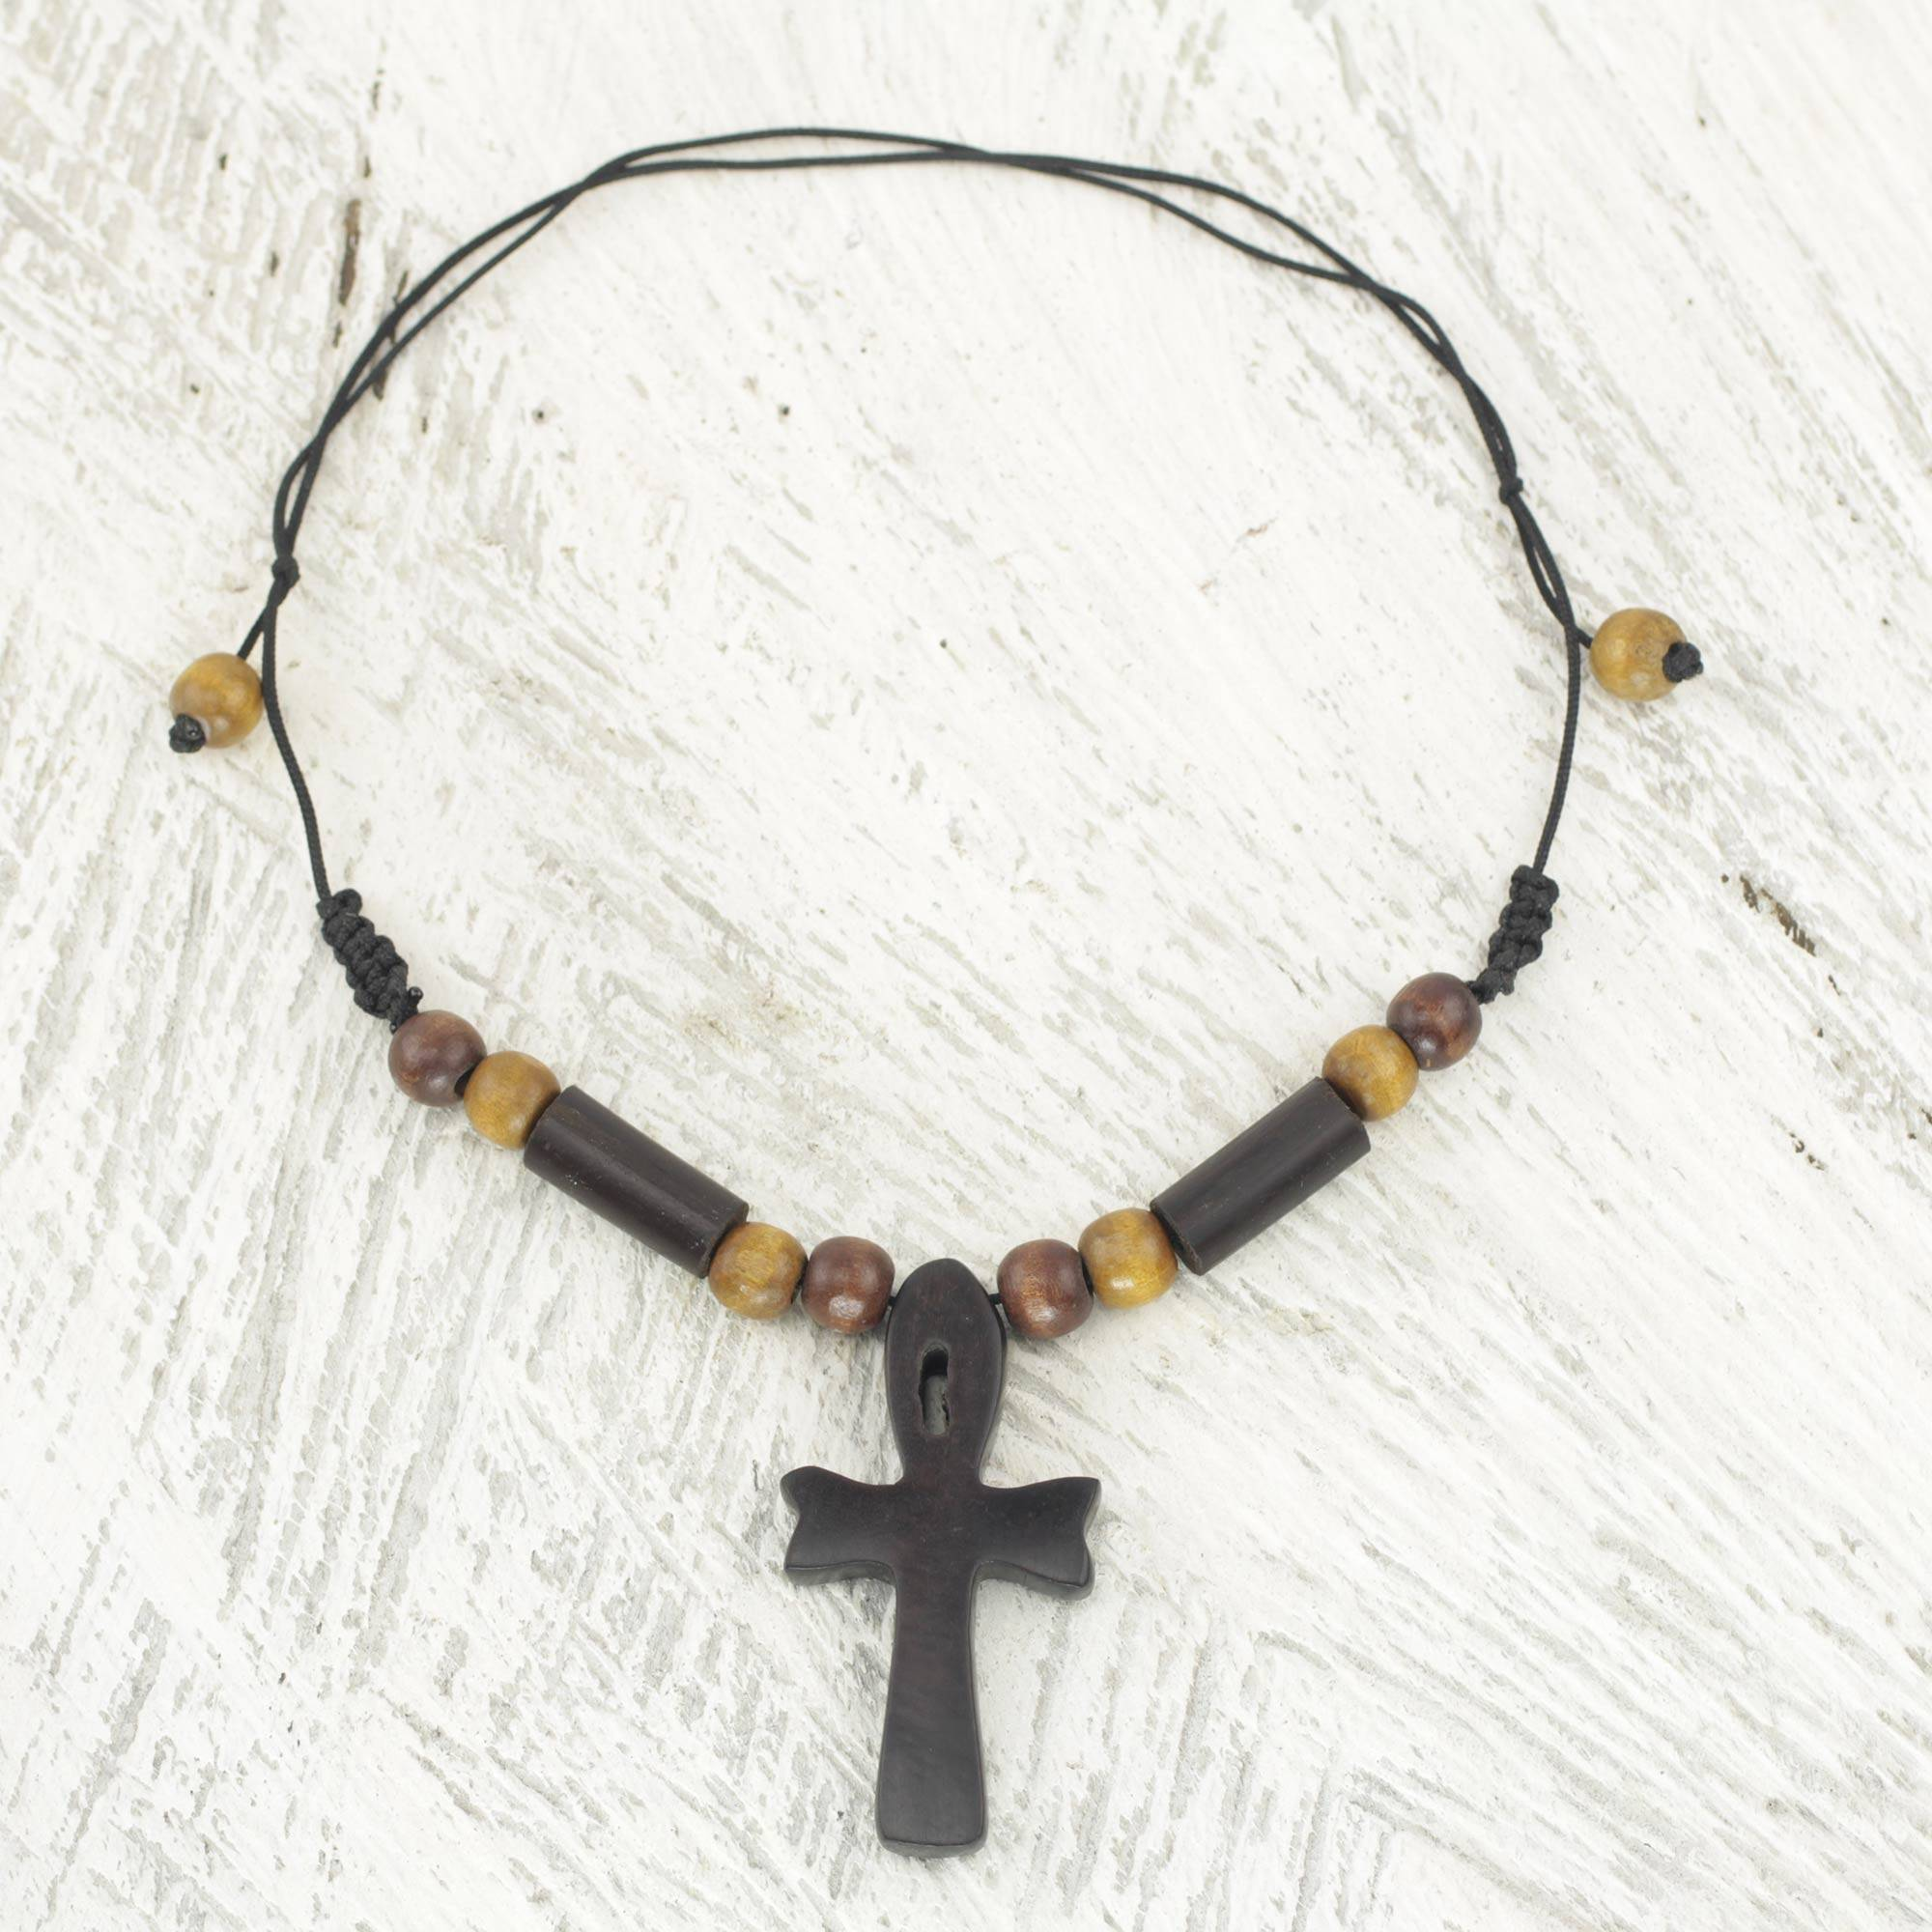 Handcrafted Ankh Necklace In Ebony And Bamboo Ghana African Ankh